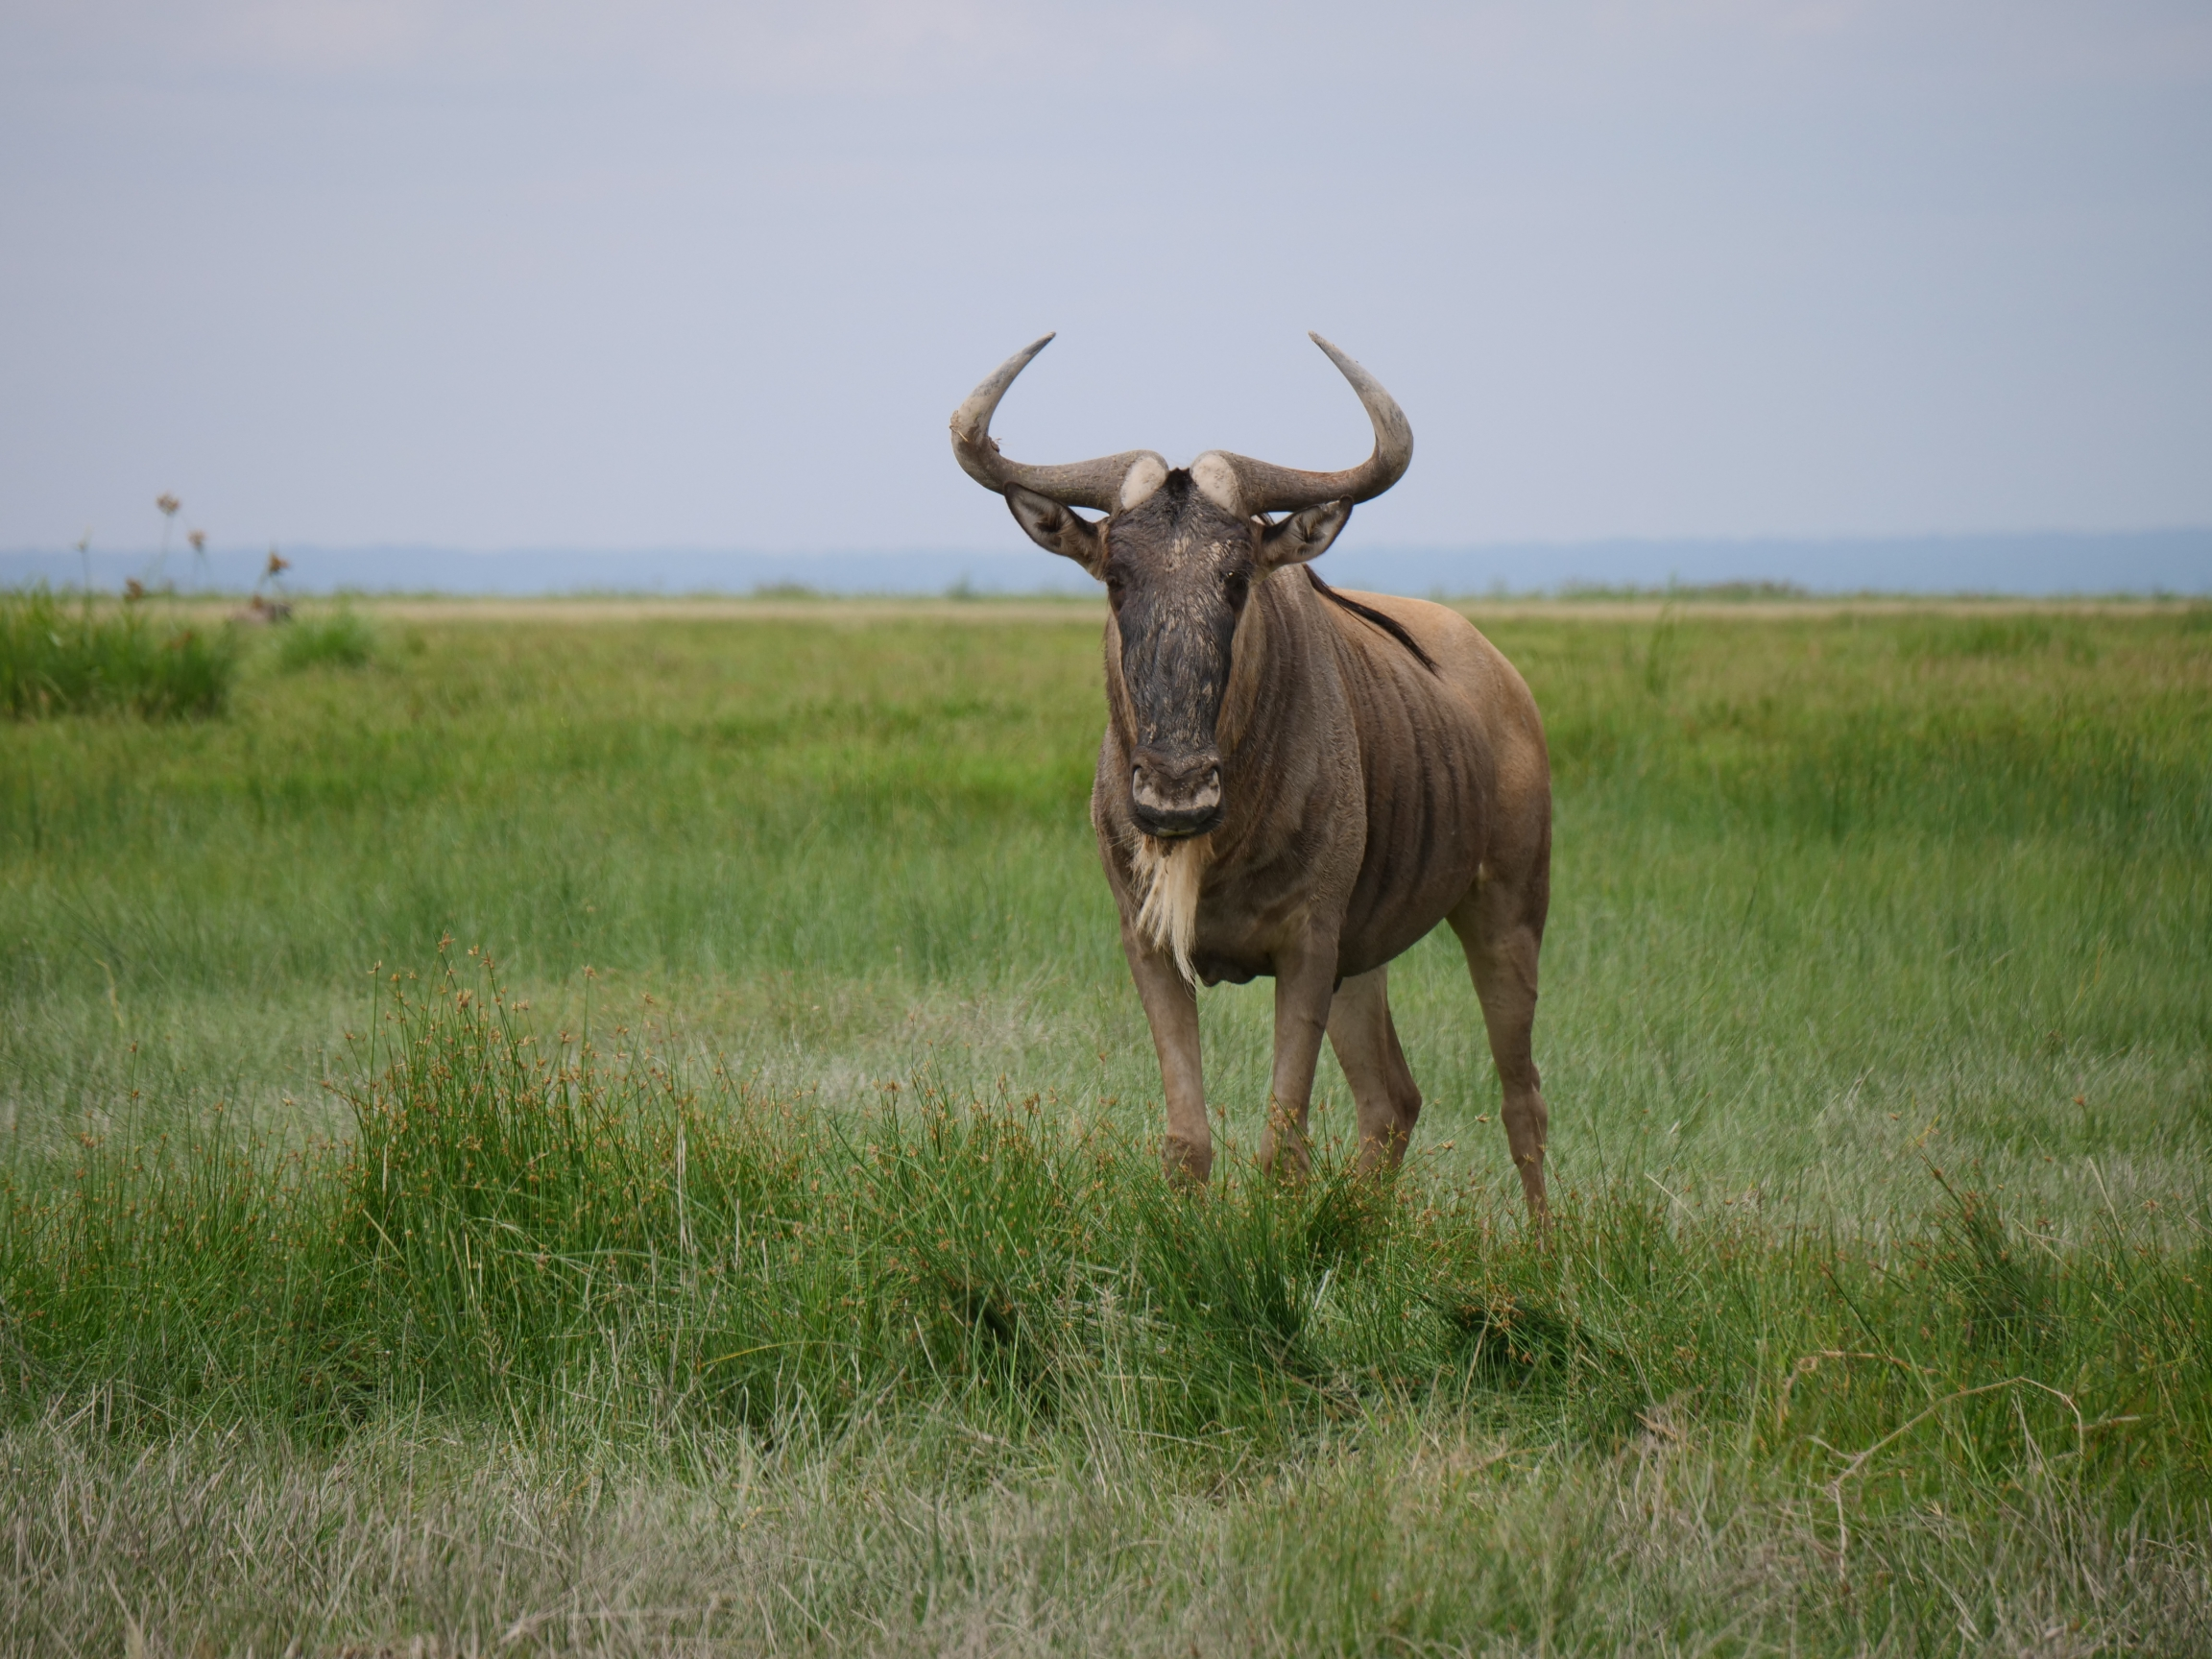 A wildebeest stands in the middle of a grassy field